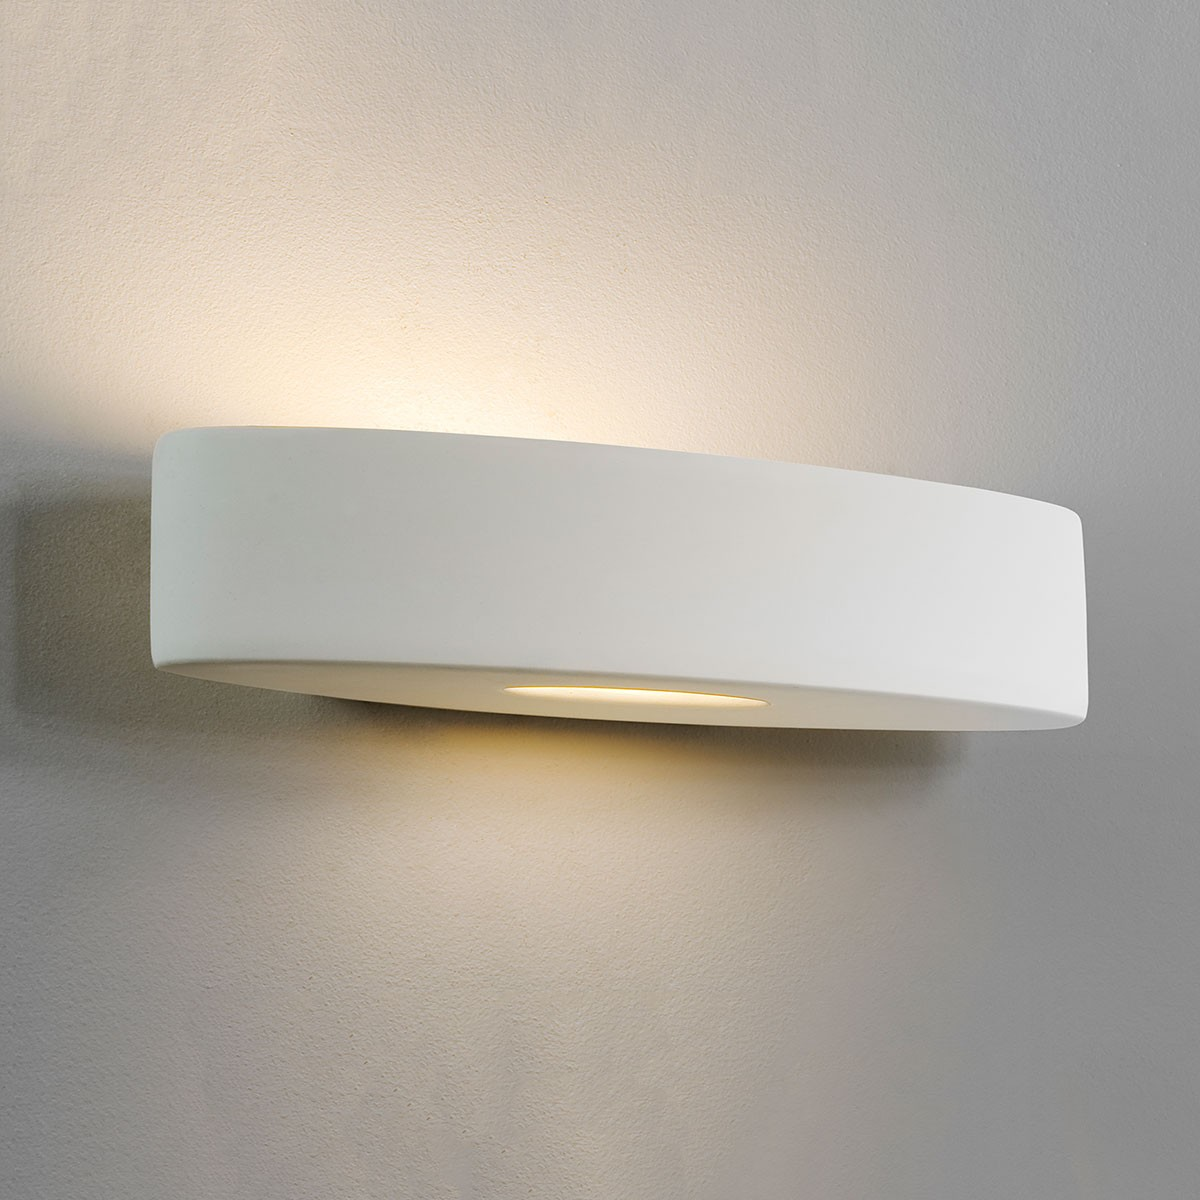 Astro Ceramic Wall Lights : Astro Ovaro Plus 420 Ceramic Wall Light at UK Electrical Supplies.